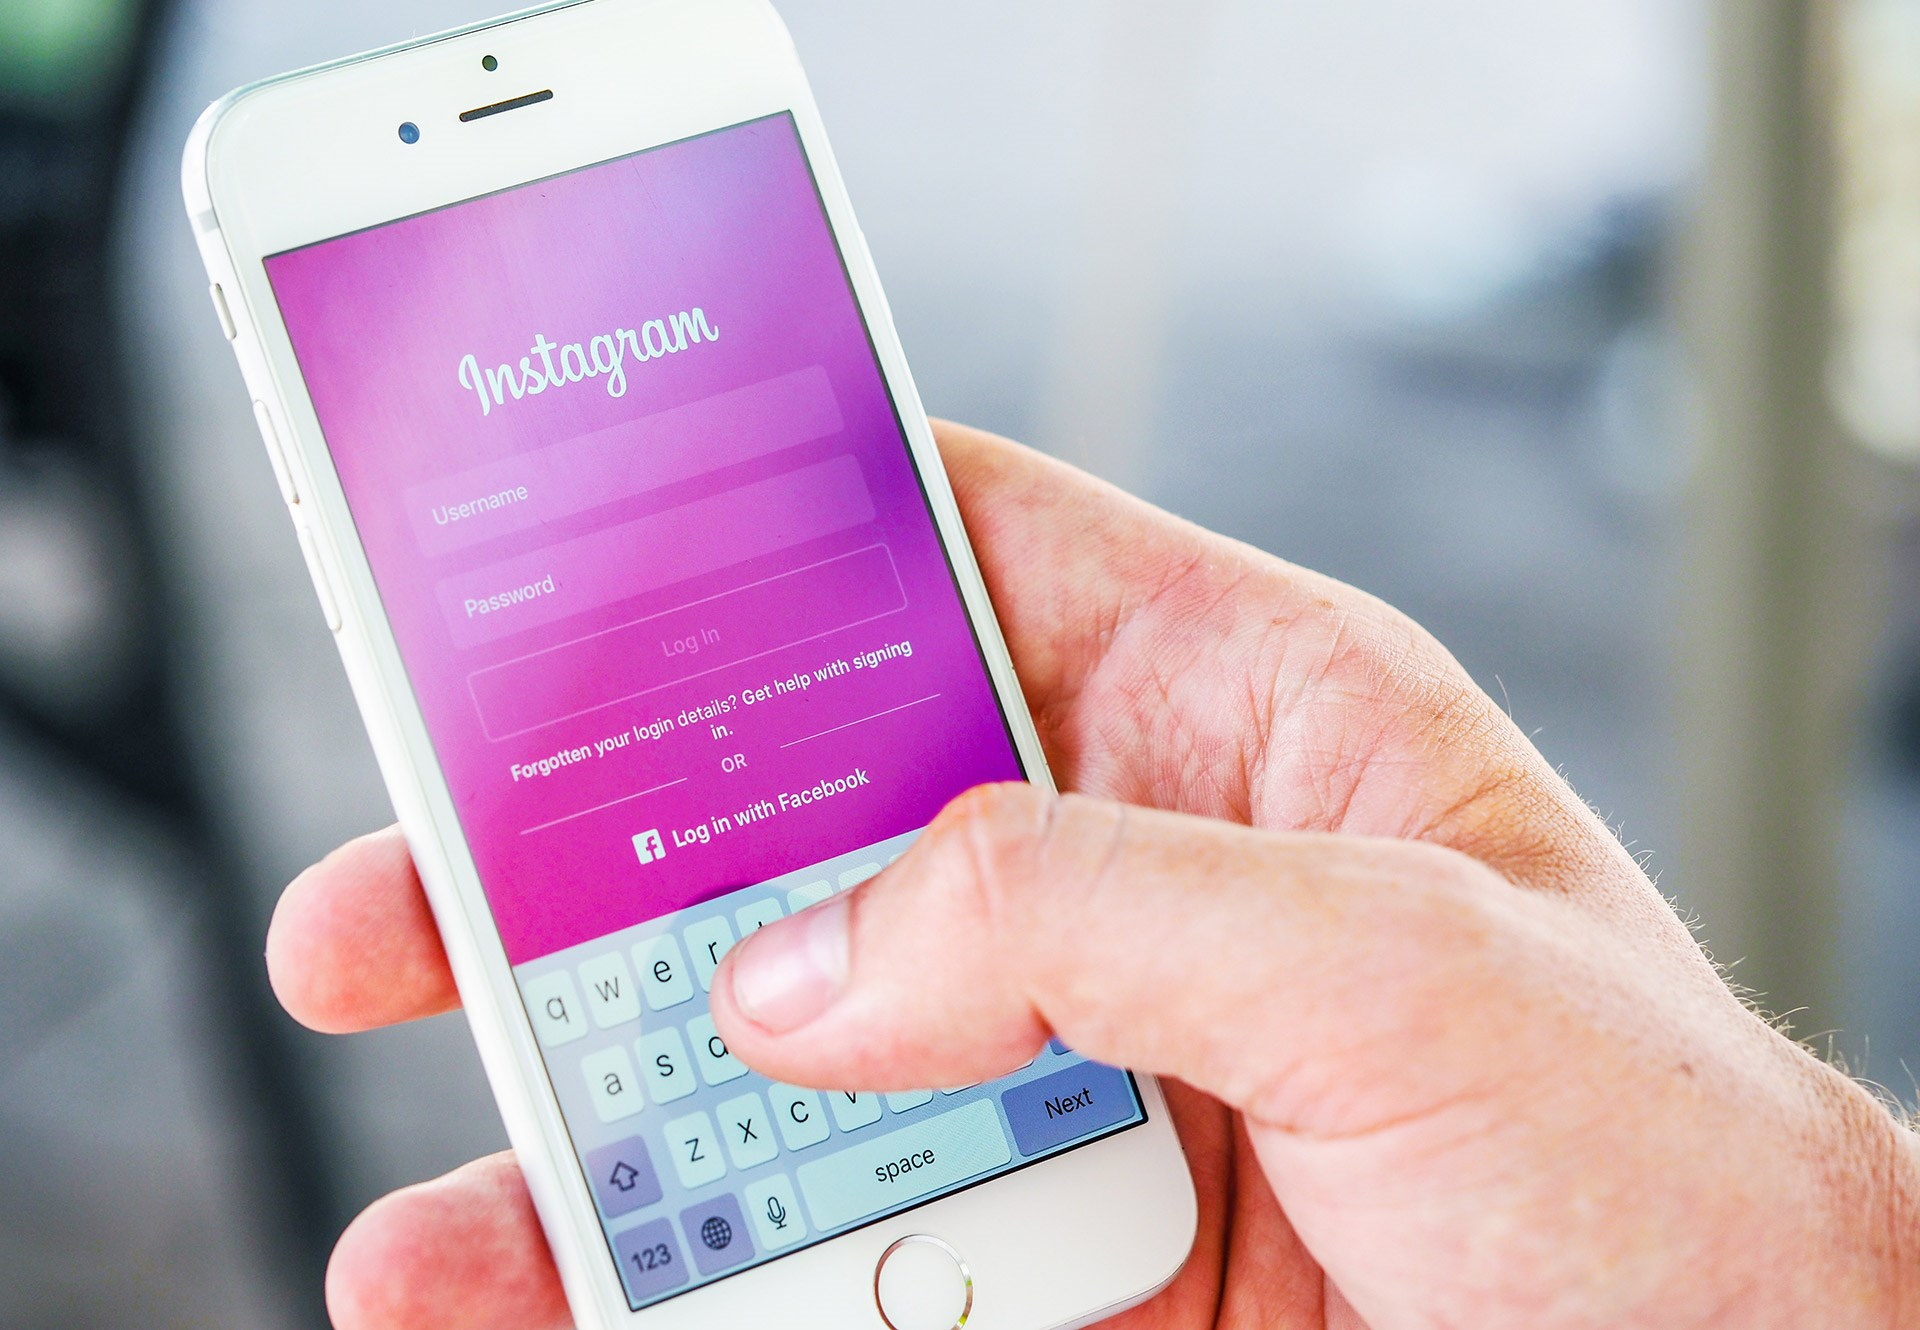 Should your business use Instagram?